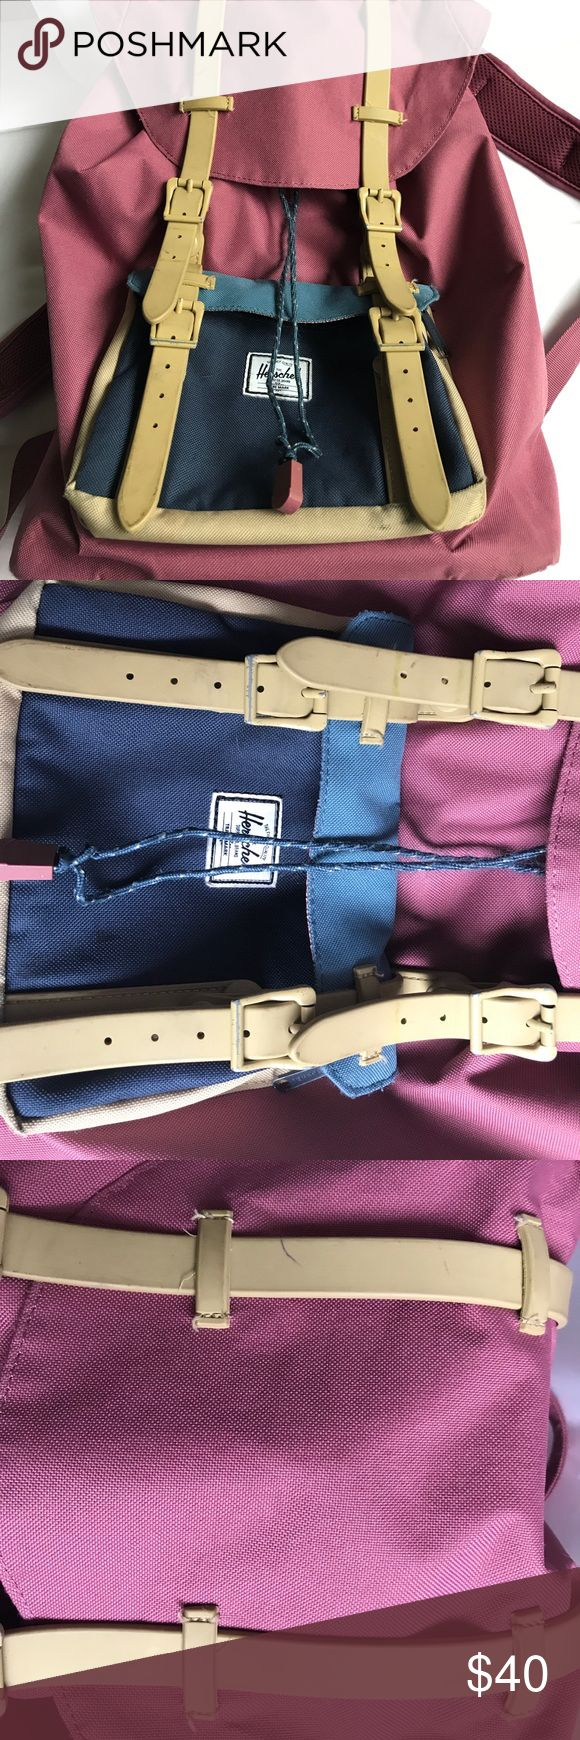 HERSCHEL Backpack It's not in perfect condition (price reflects this). There are some pen/marker marks on it but they're completely hidden when it's closed and snapped. Herschel Supply Company Bags Backpacks